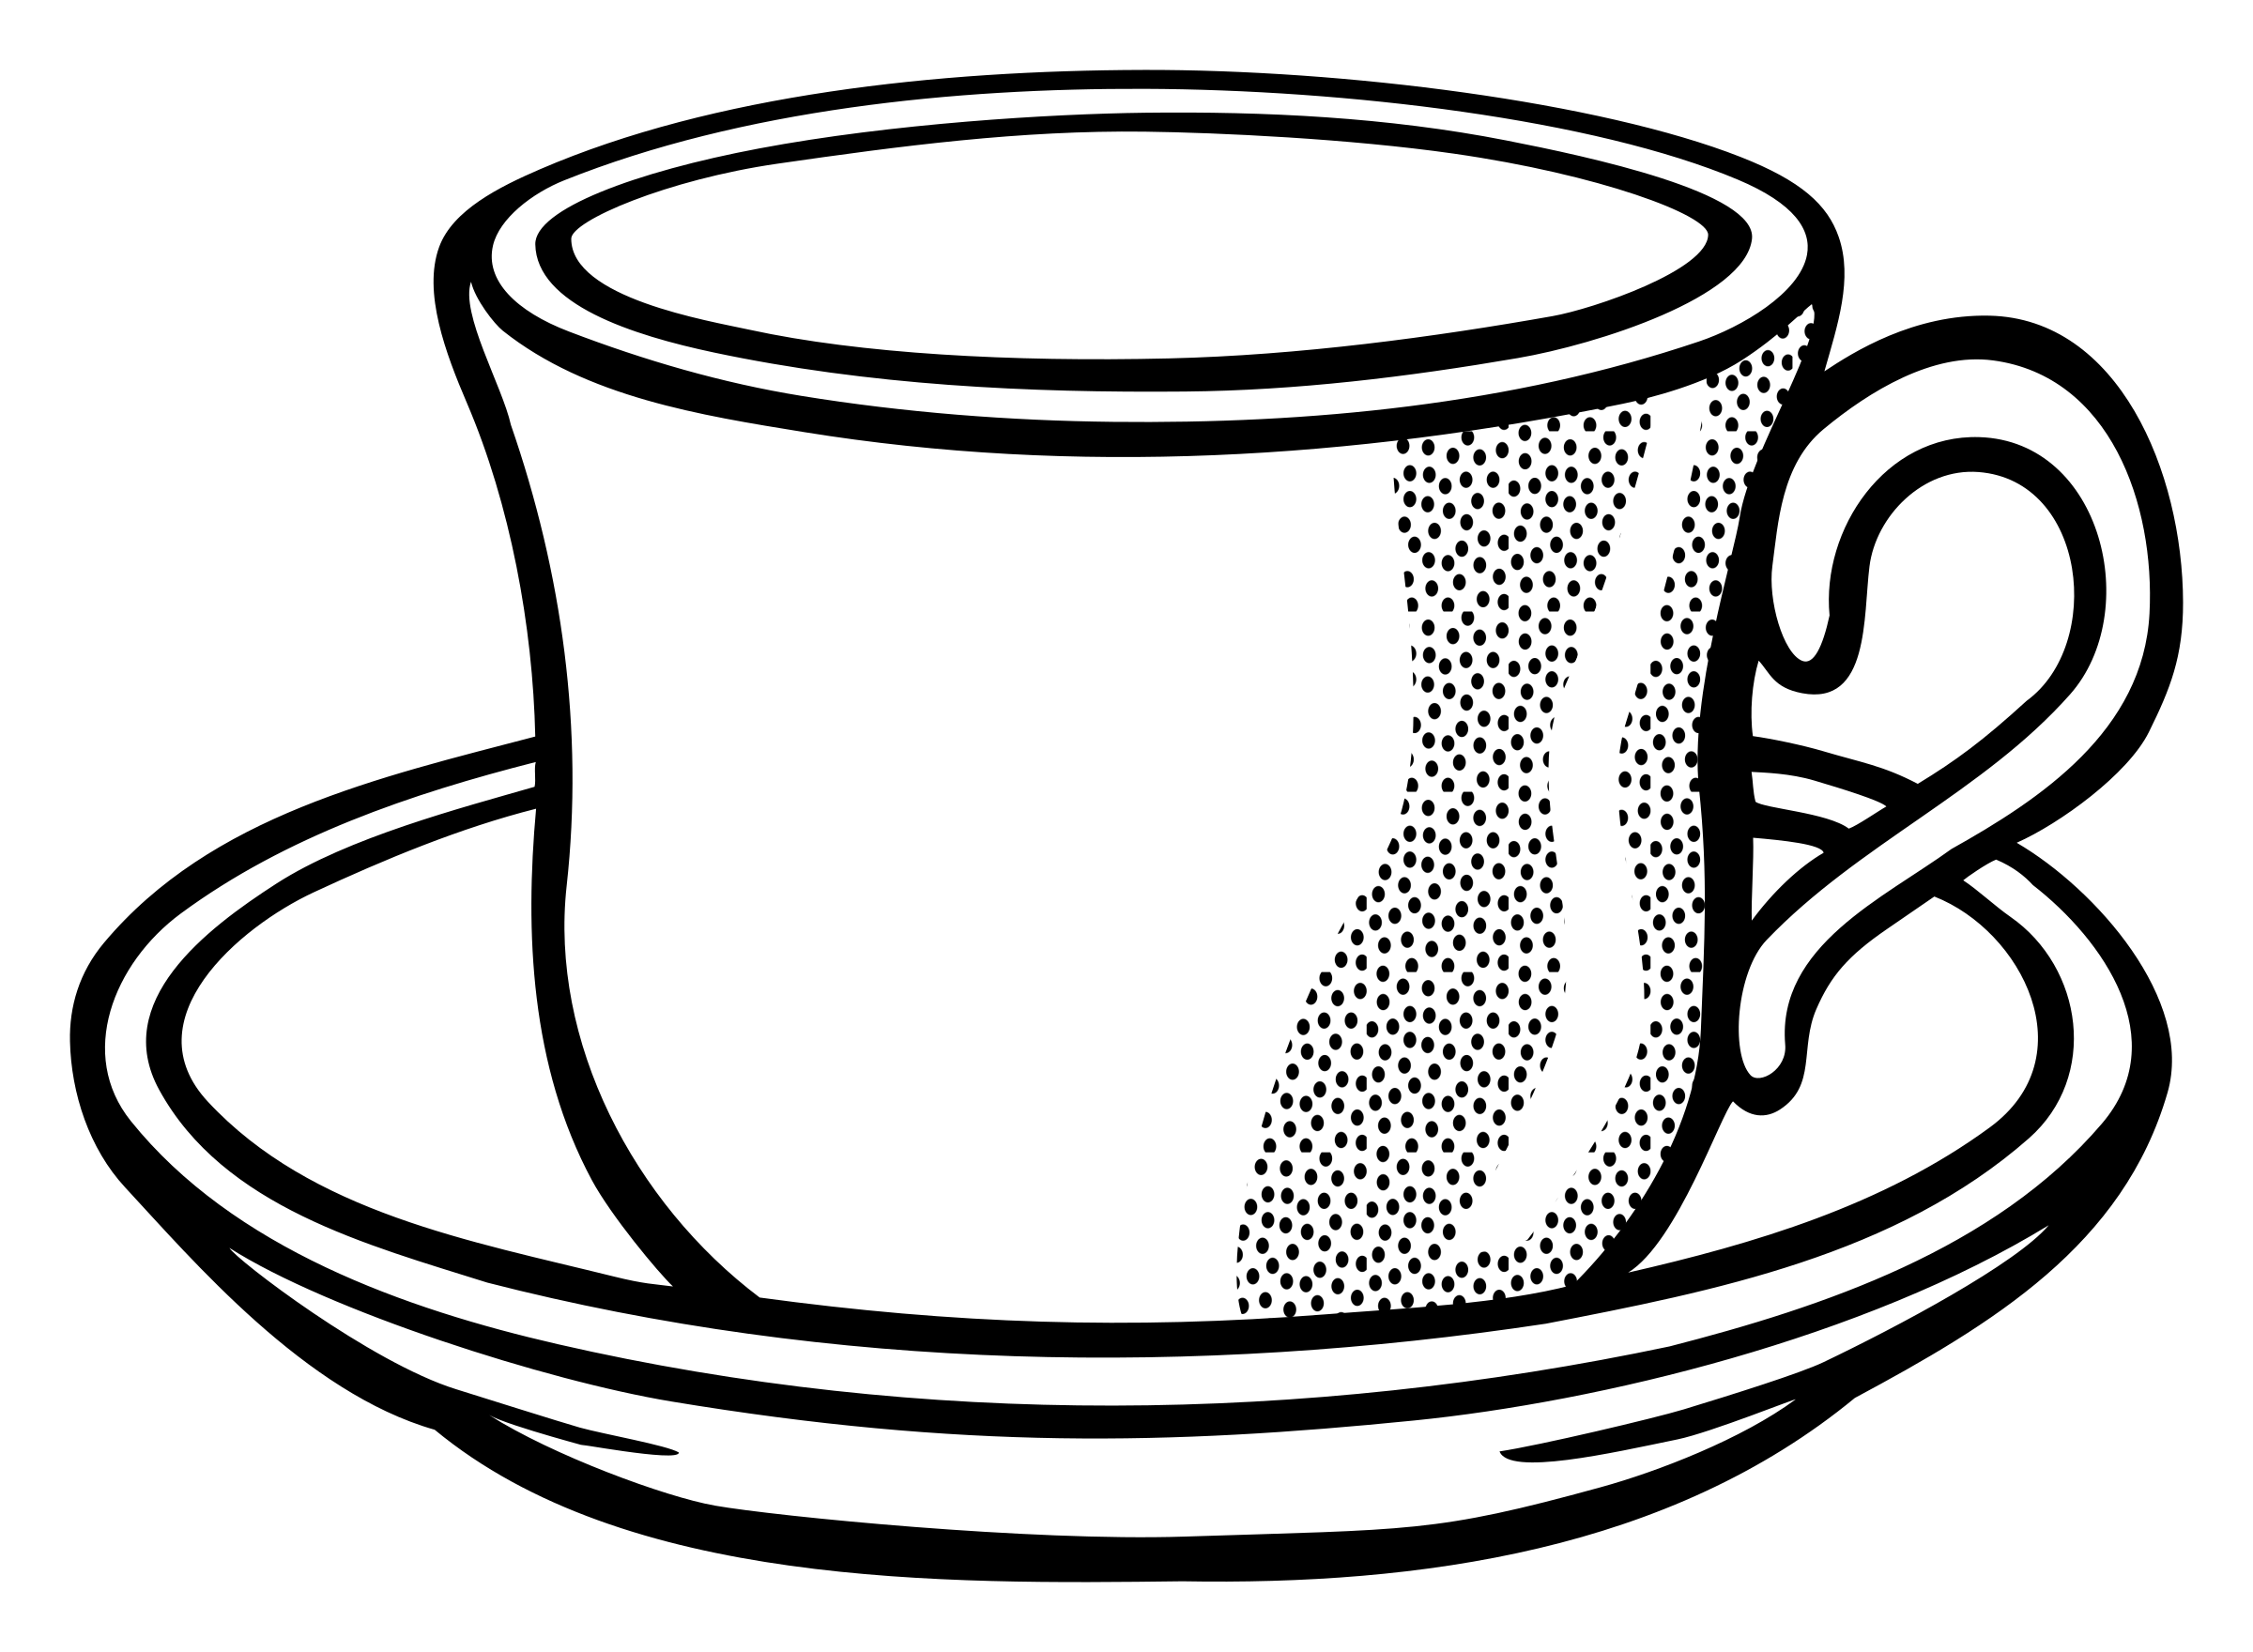 Tasse clipart  Clipart - cup - lineart